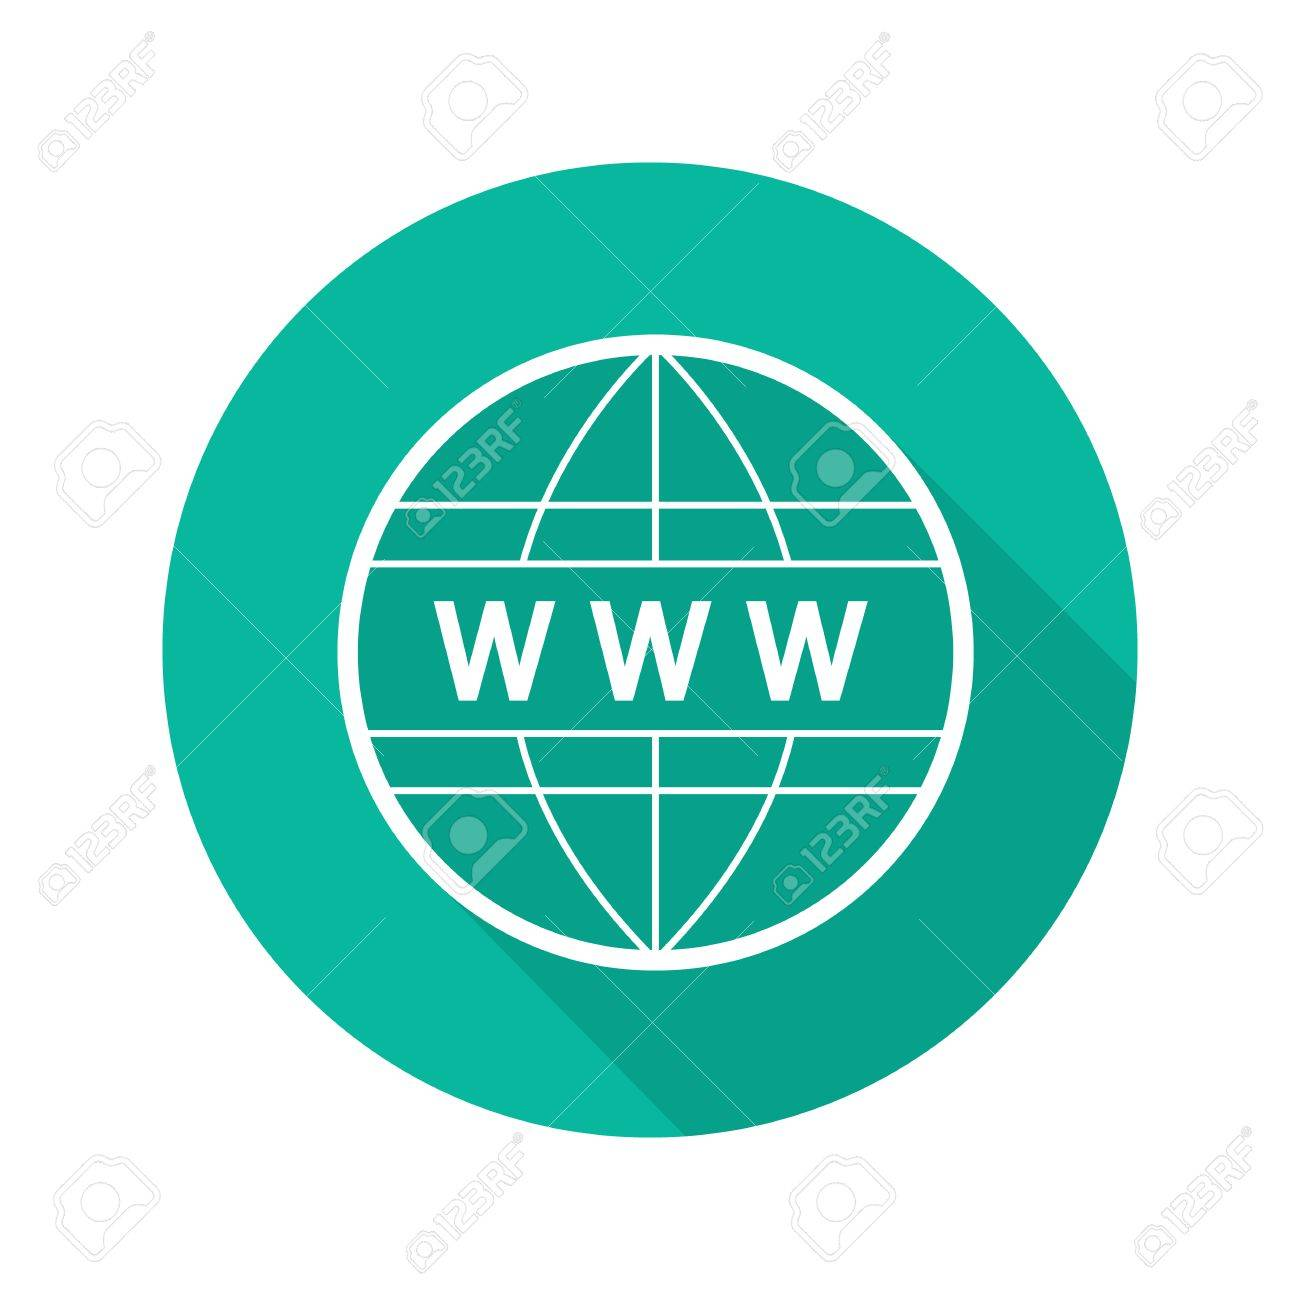 Global network flat linear long shadow icon internet connection global network flat linear long shadow icon internet connection www globe vector outline buycottarizona Images